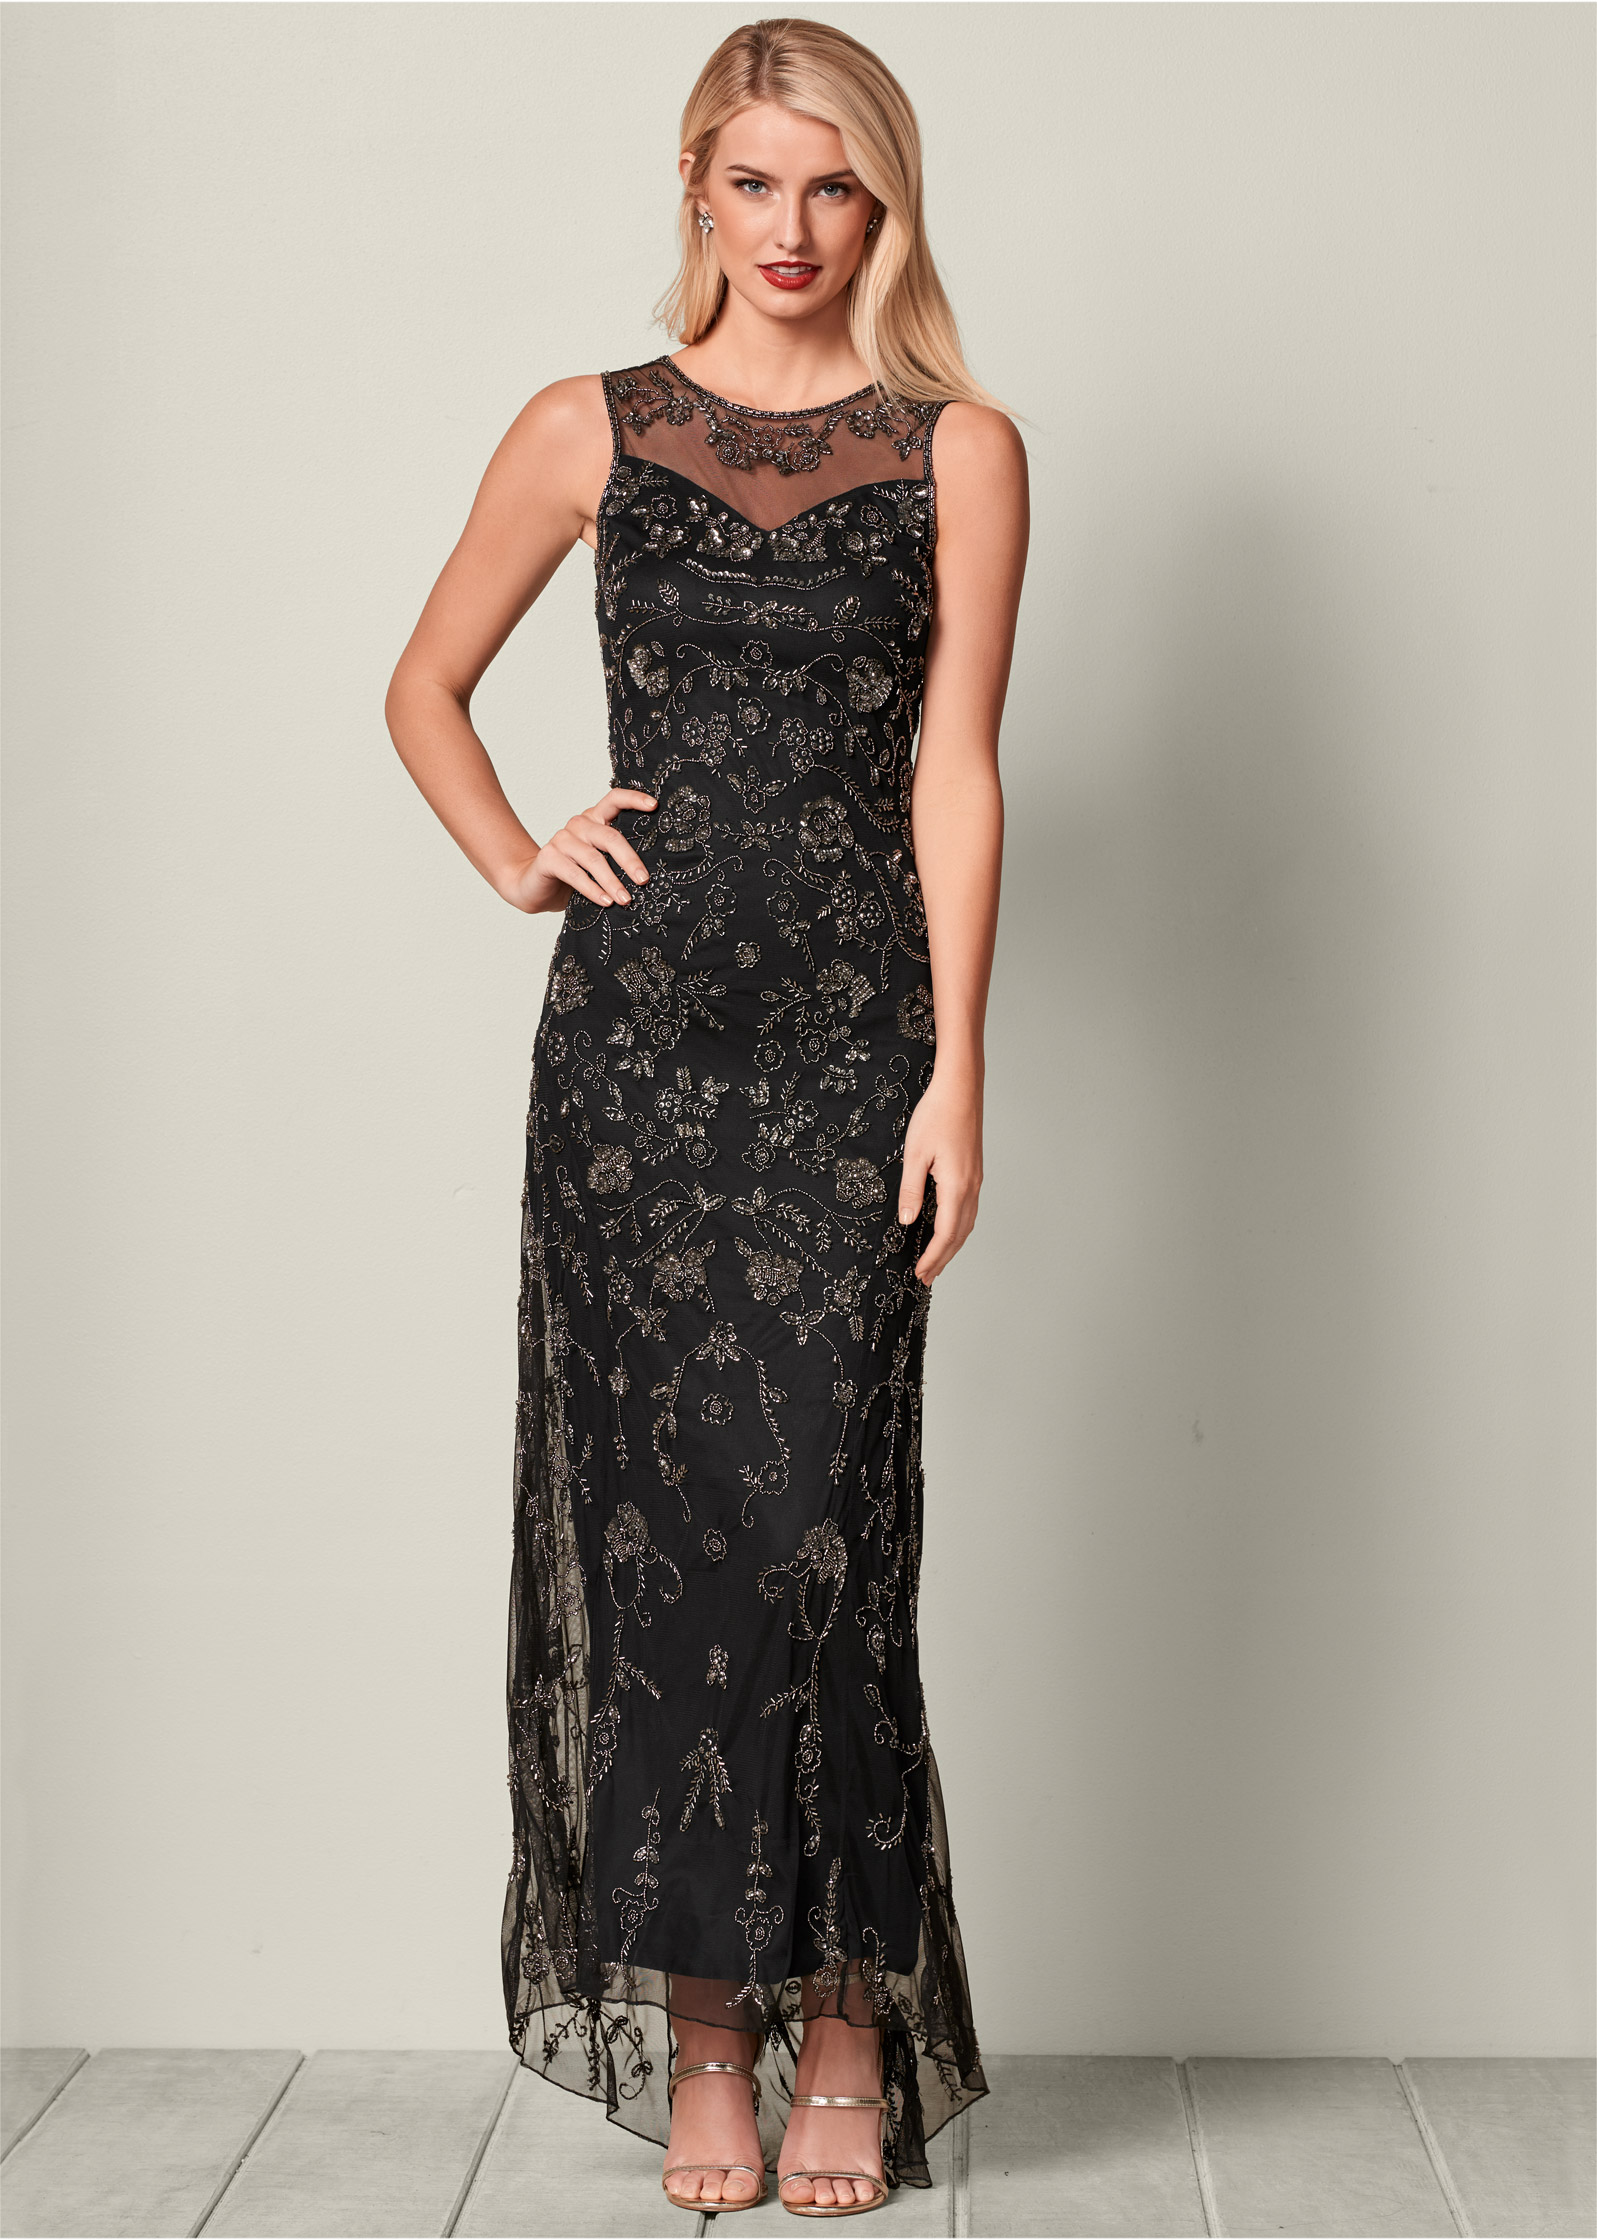 All Over Beaded Long Dress in Black   VENUS ALL OVER BEADED LONG DRESS  HIGH HEEL STRAPPY SANDAL